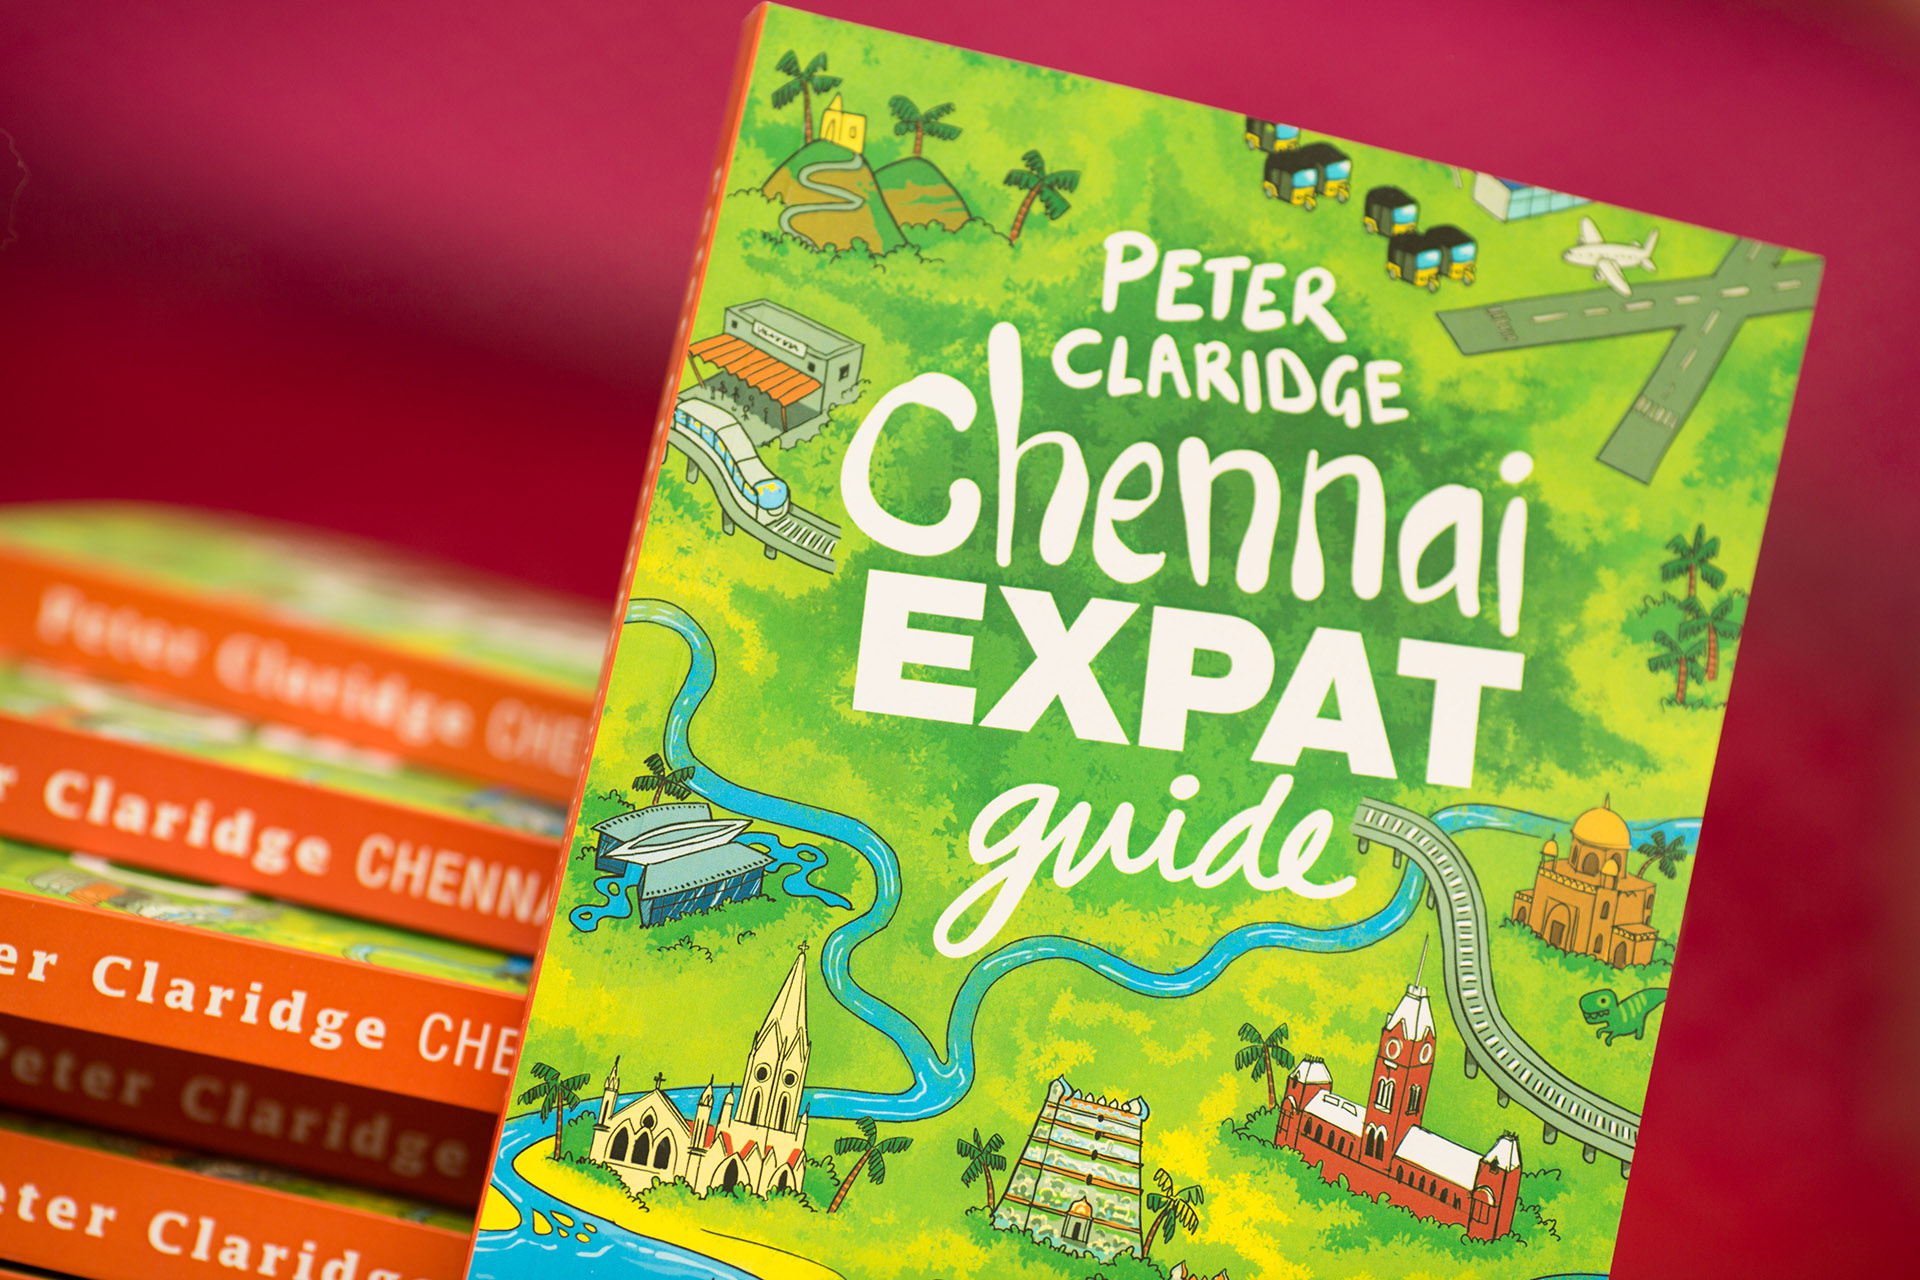 Chennai Expat Guide Launched!